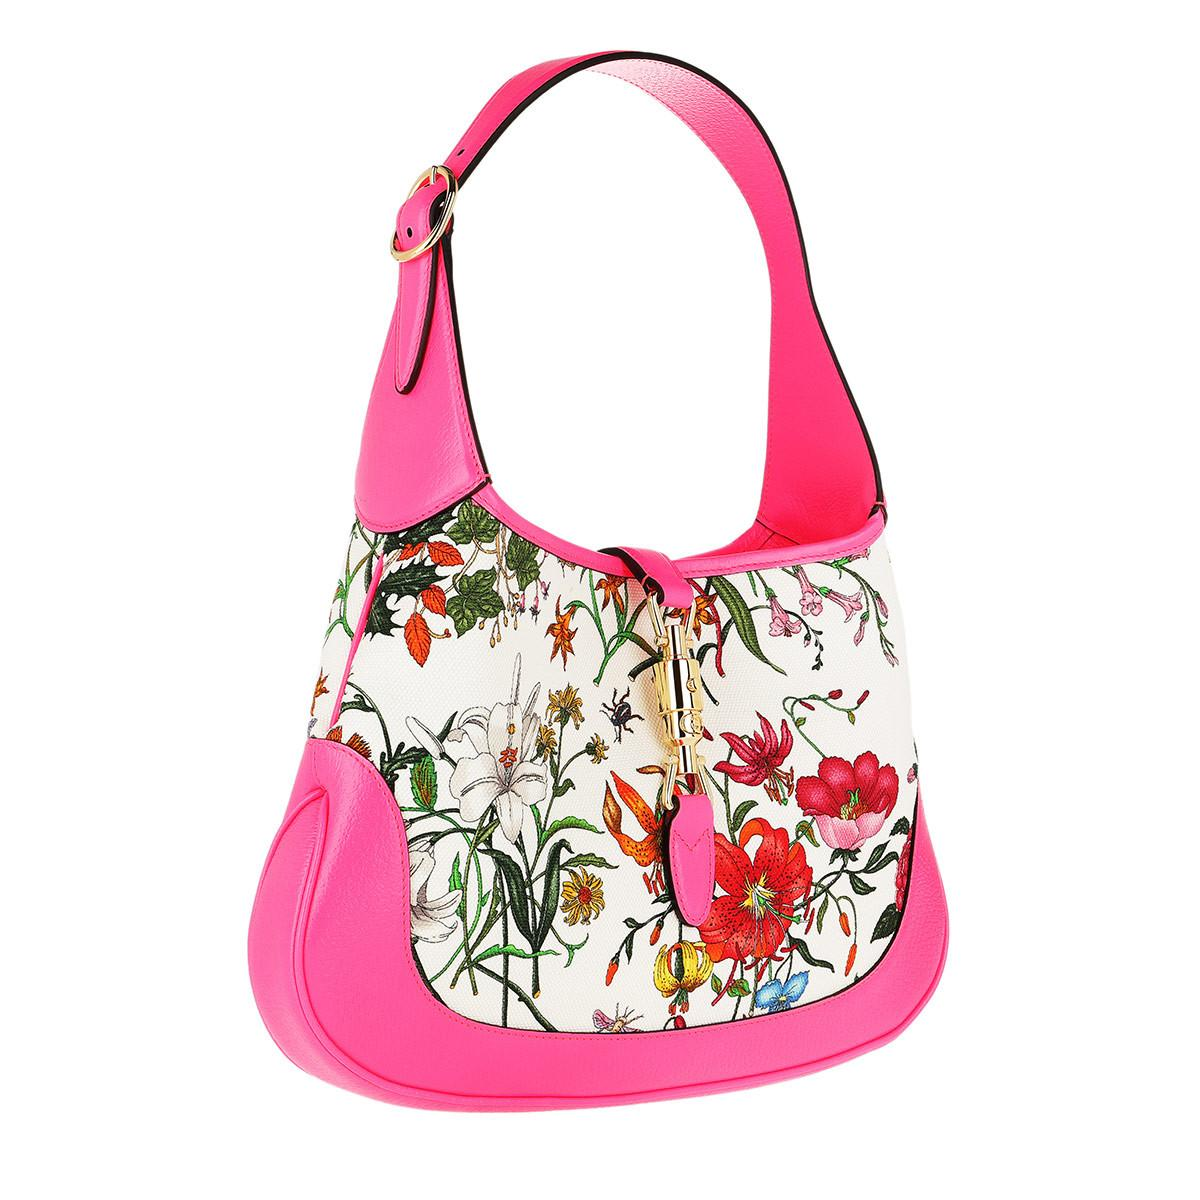 be2945b8781 Gucci Jackie Medium Flora Hobo Bag in Pink - Save 8% - Lyst